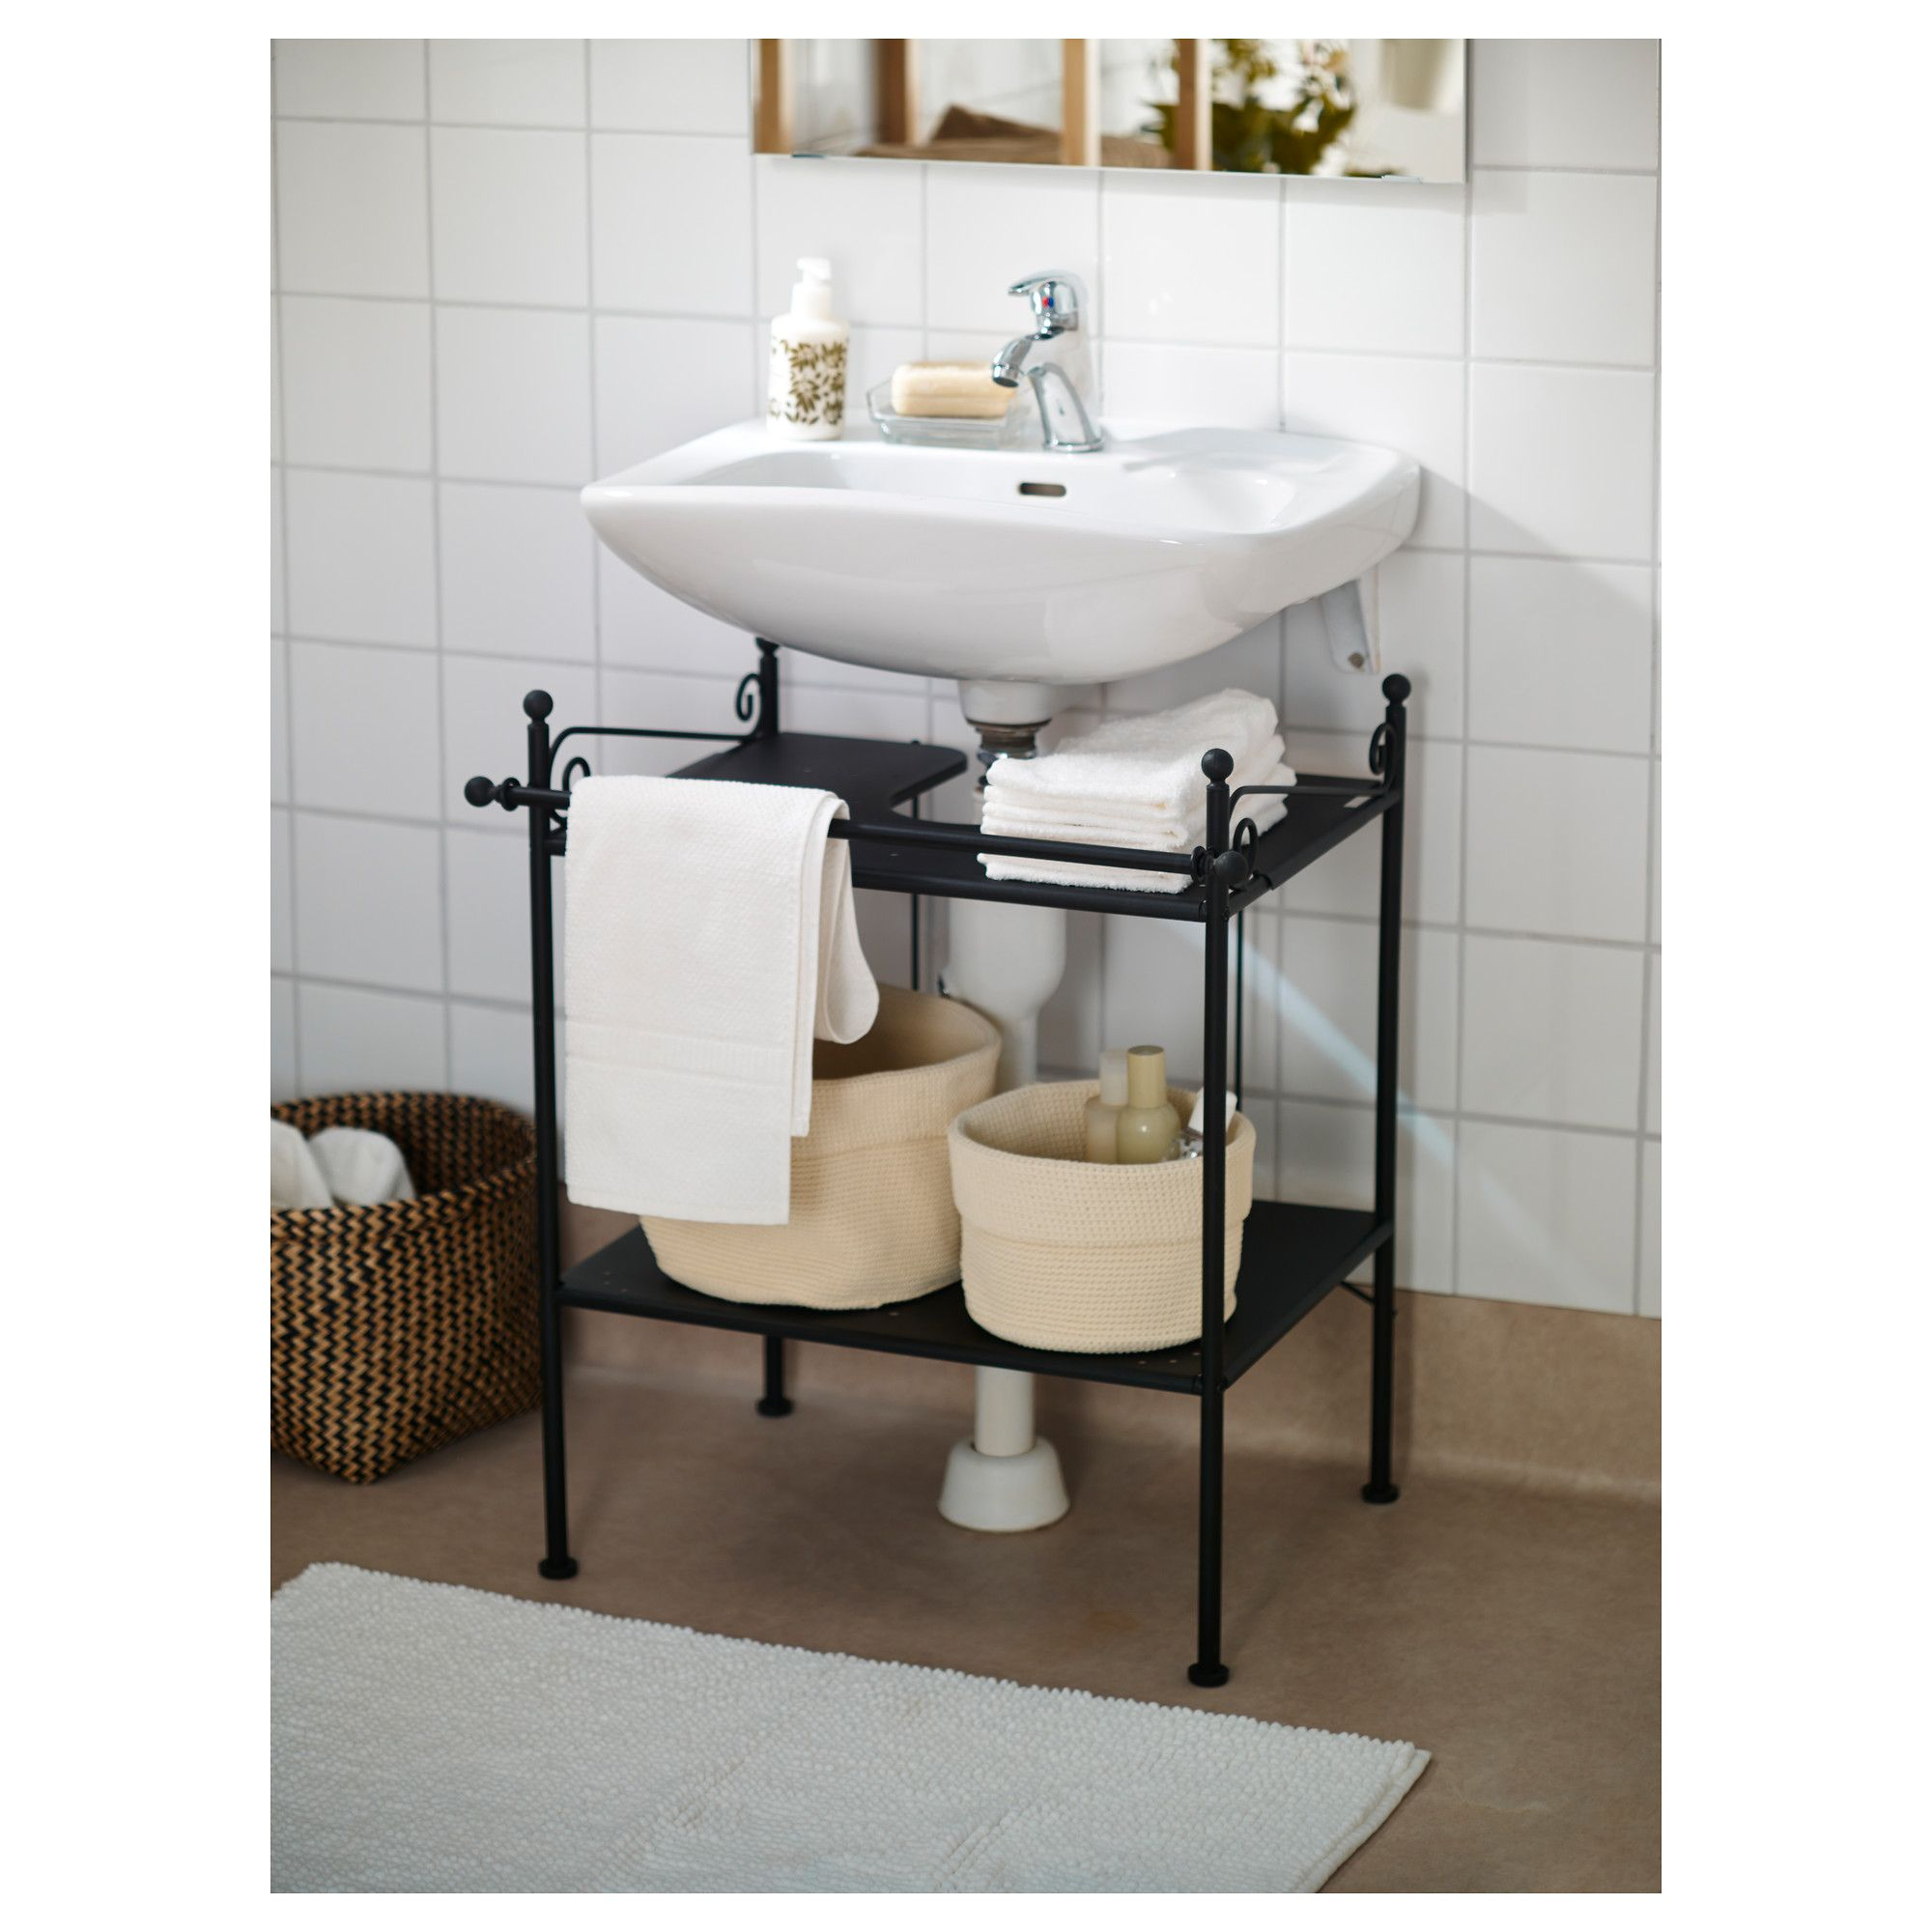 Ronnskar ikea ideas for the house - Mueble bajo lavabo ...